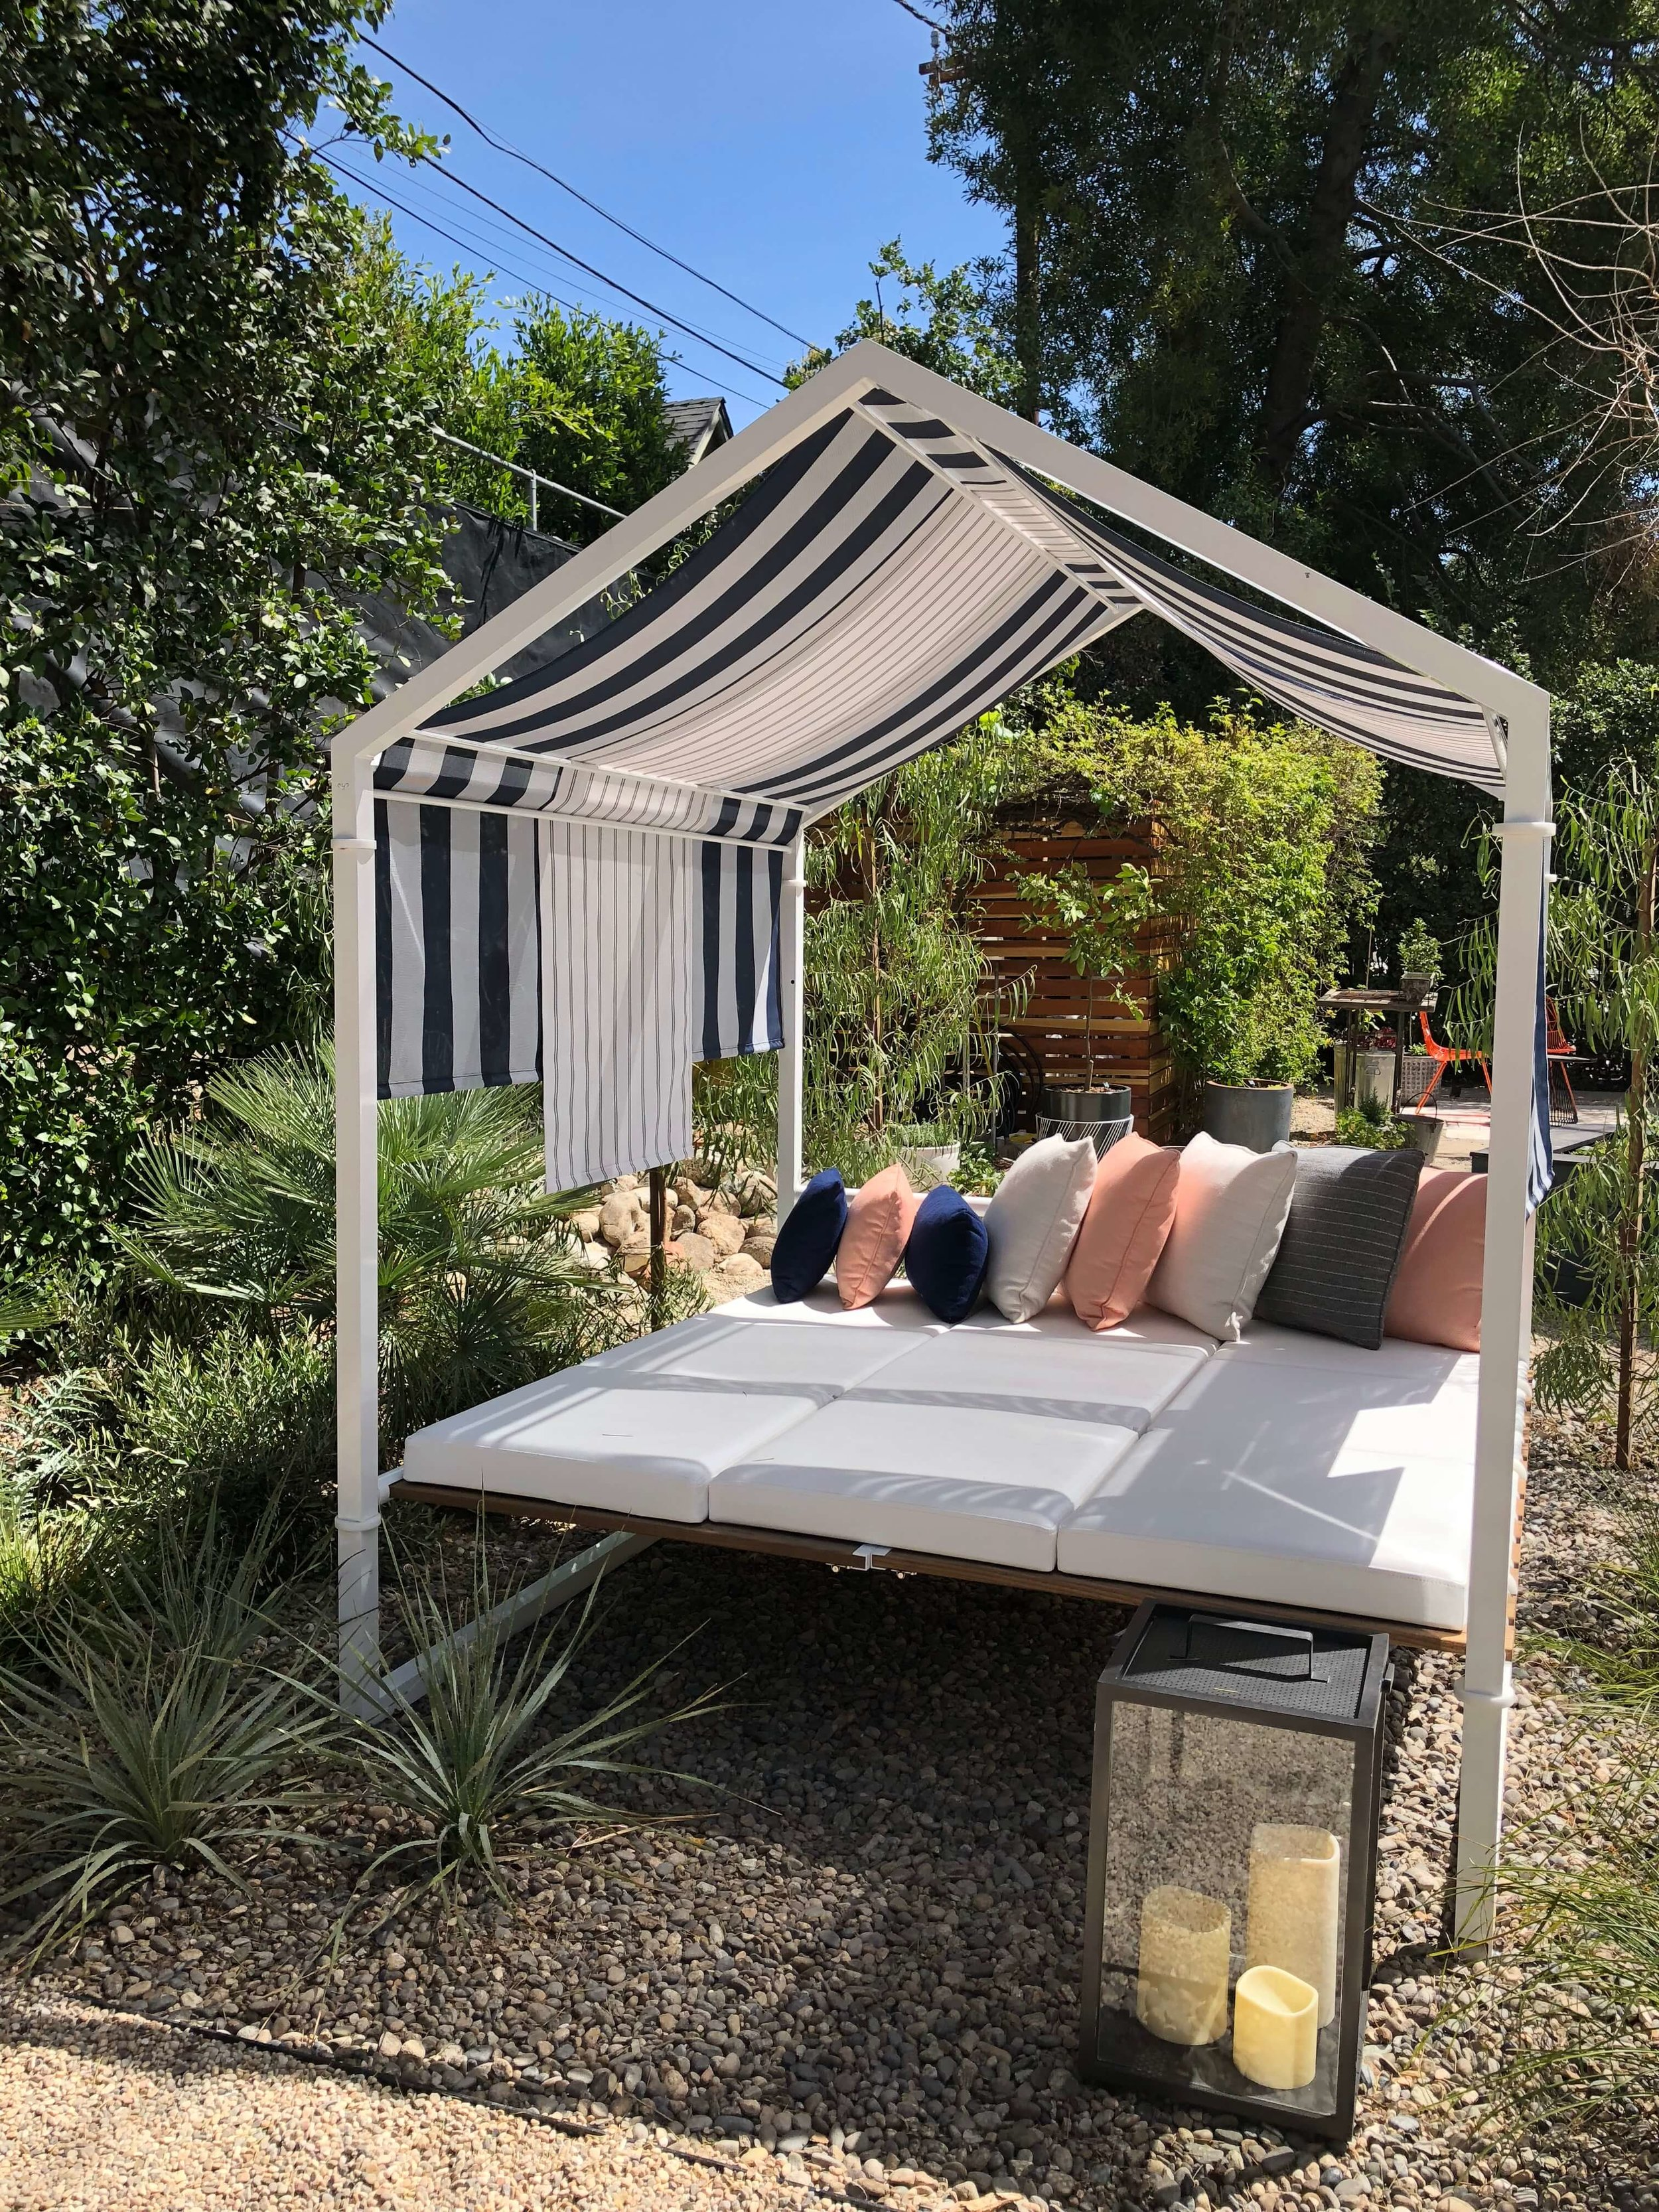 Guest house garden with outdoor canopy bed, Pasadena Showcase House, Designer: L2 Interiors #canopybed #gardenideas #gardendesignideas #outdoorlivingideas #outdoorliving #outdoorfurnitureideas